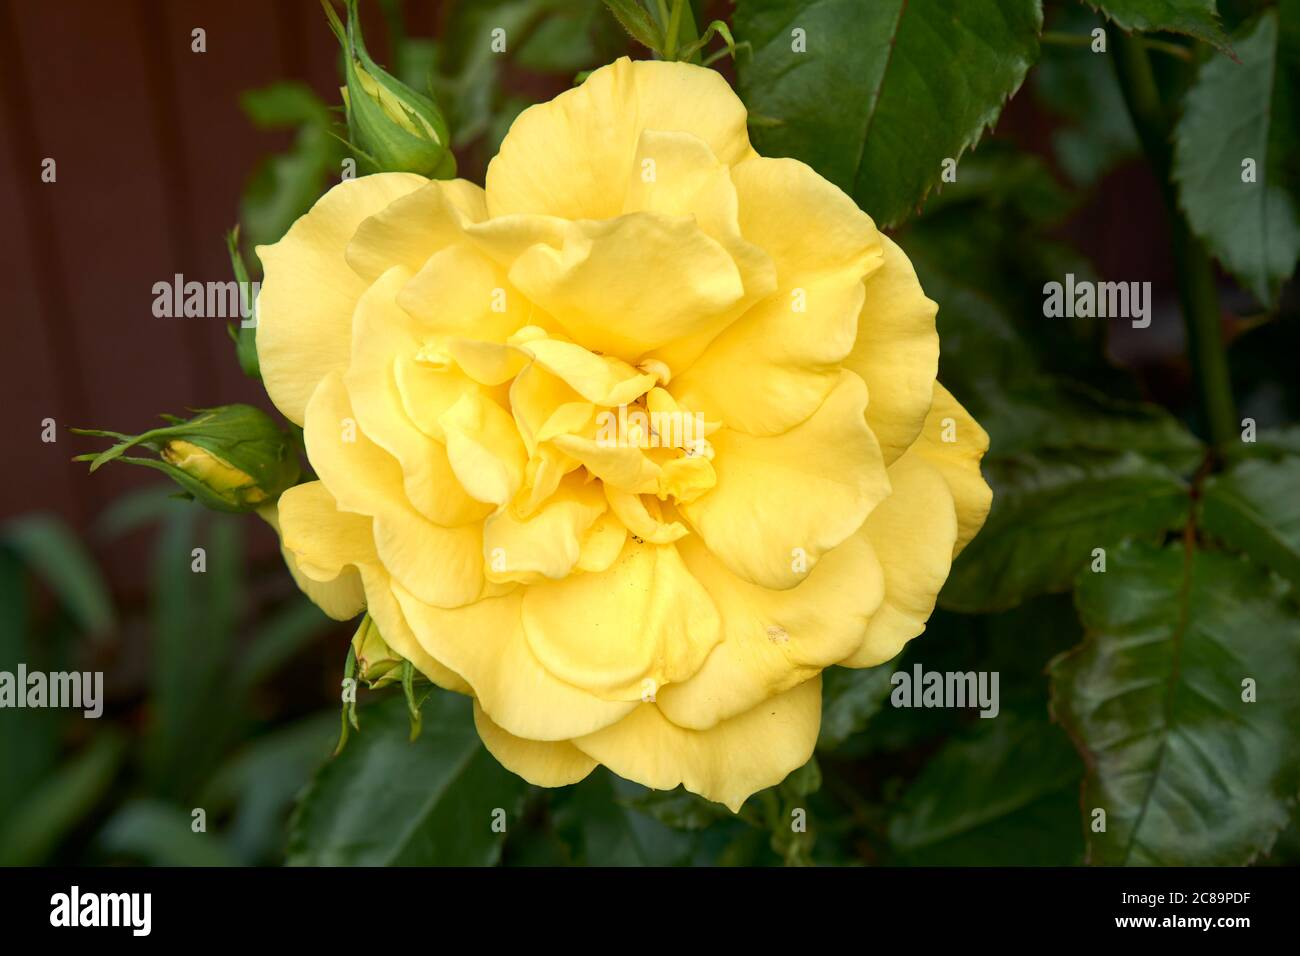 closeup-of-a-large-yellow-rose-blooming-